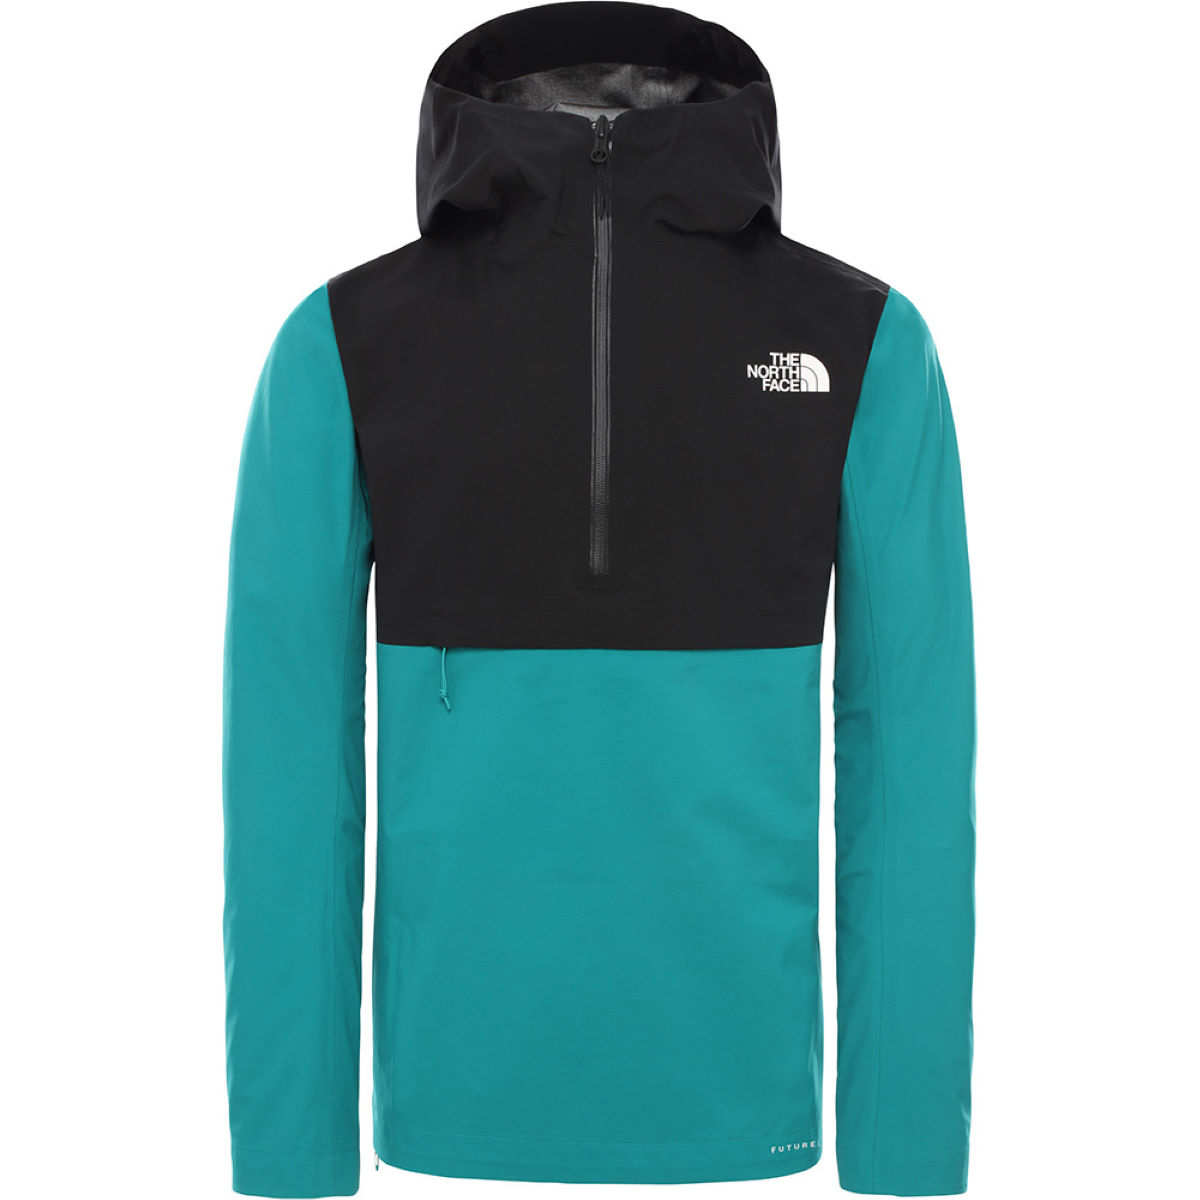 The North Face The North Face Arque FutureLight™ Jacket   Jackets